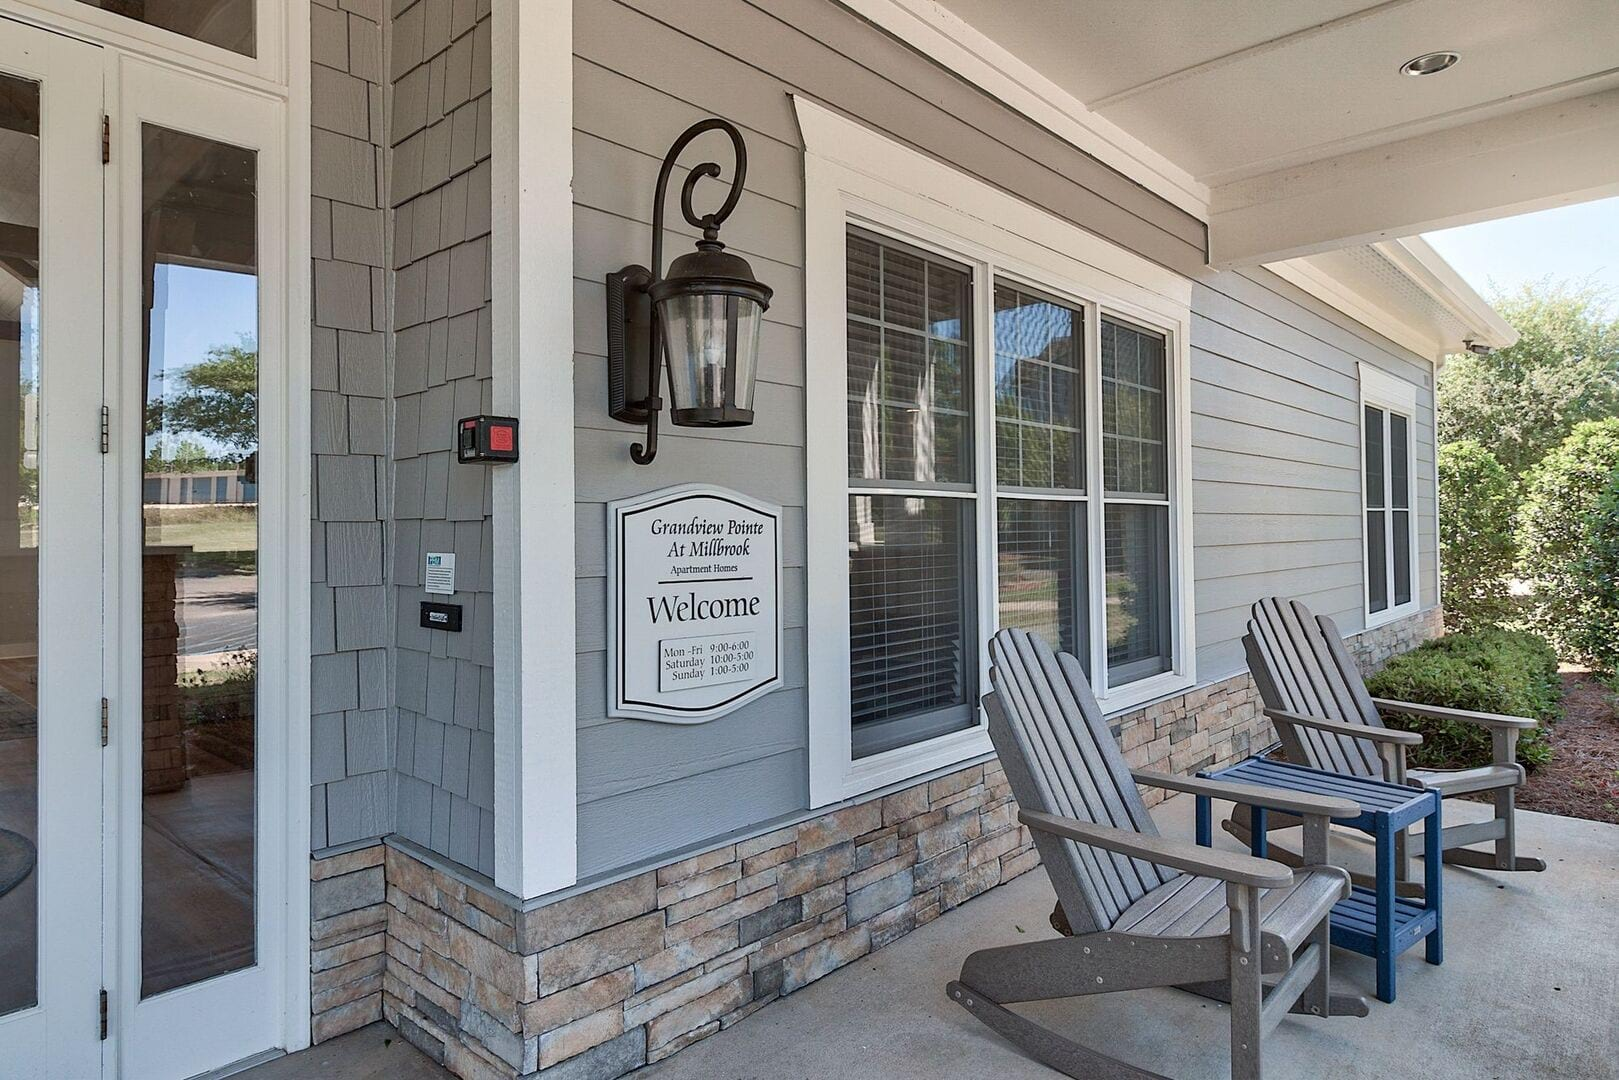 Apartments for Rent in Millbrook, AL | GRANDVIEW POINTE AT